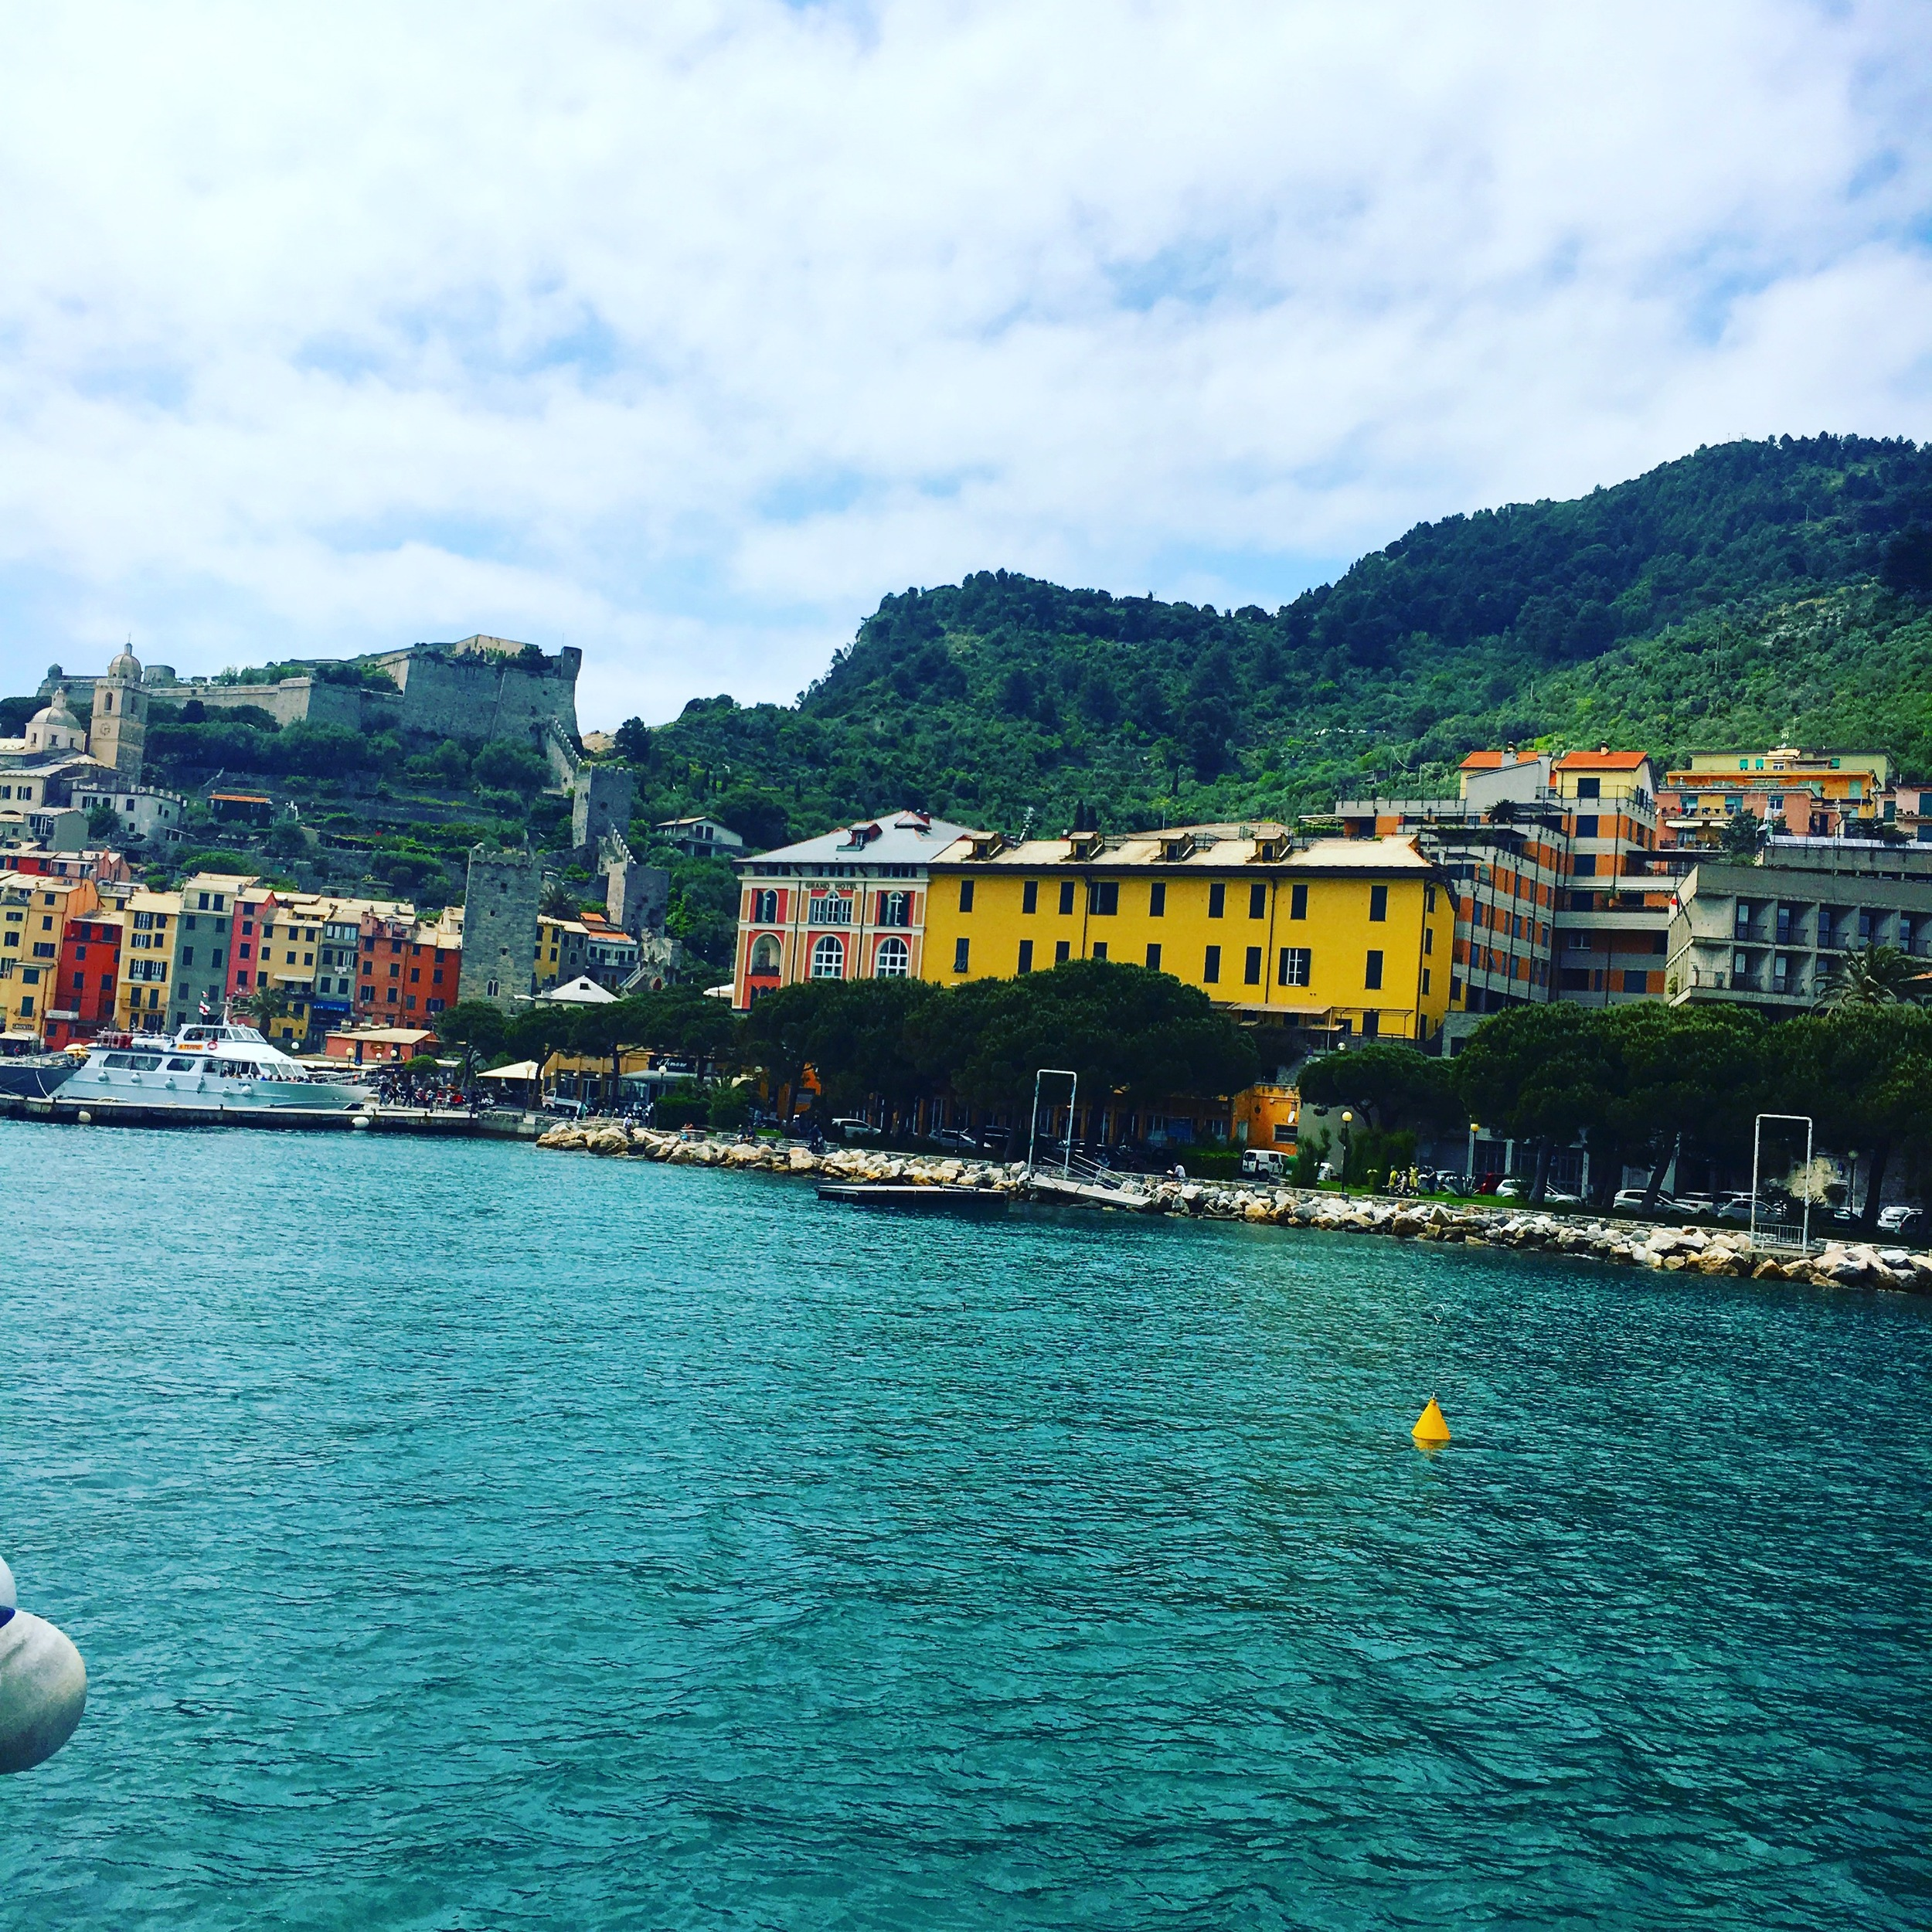 Approaching Portovenere by boat